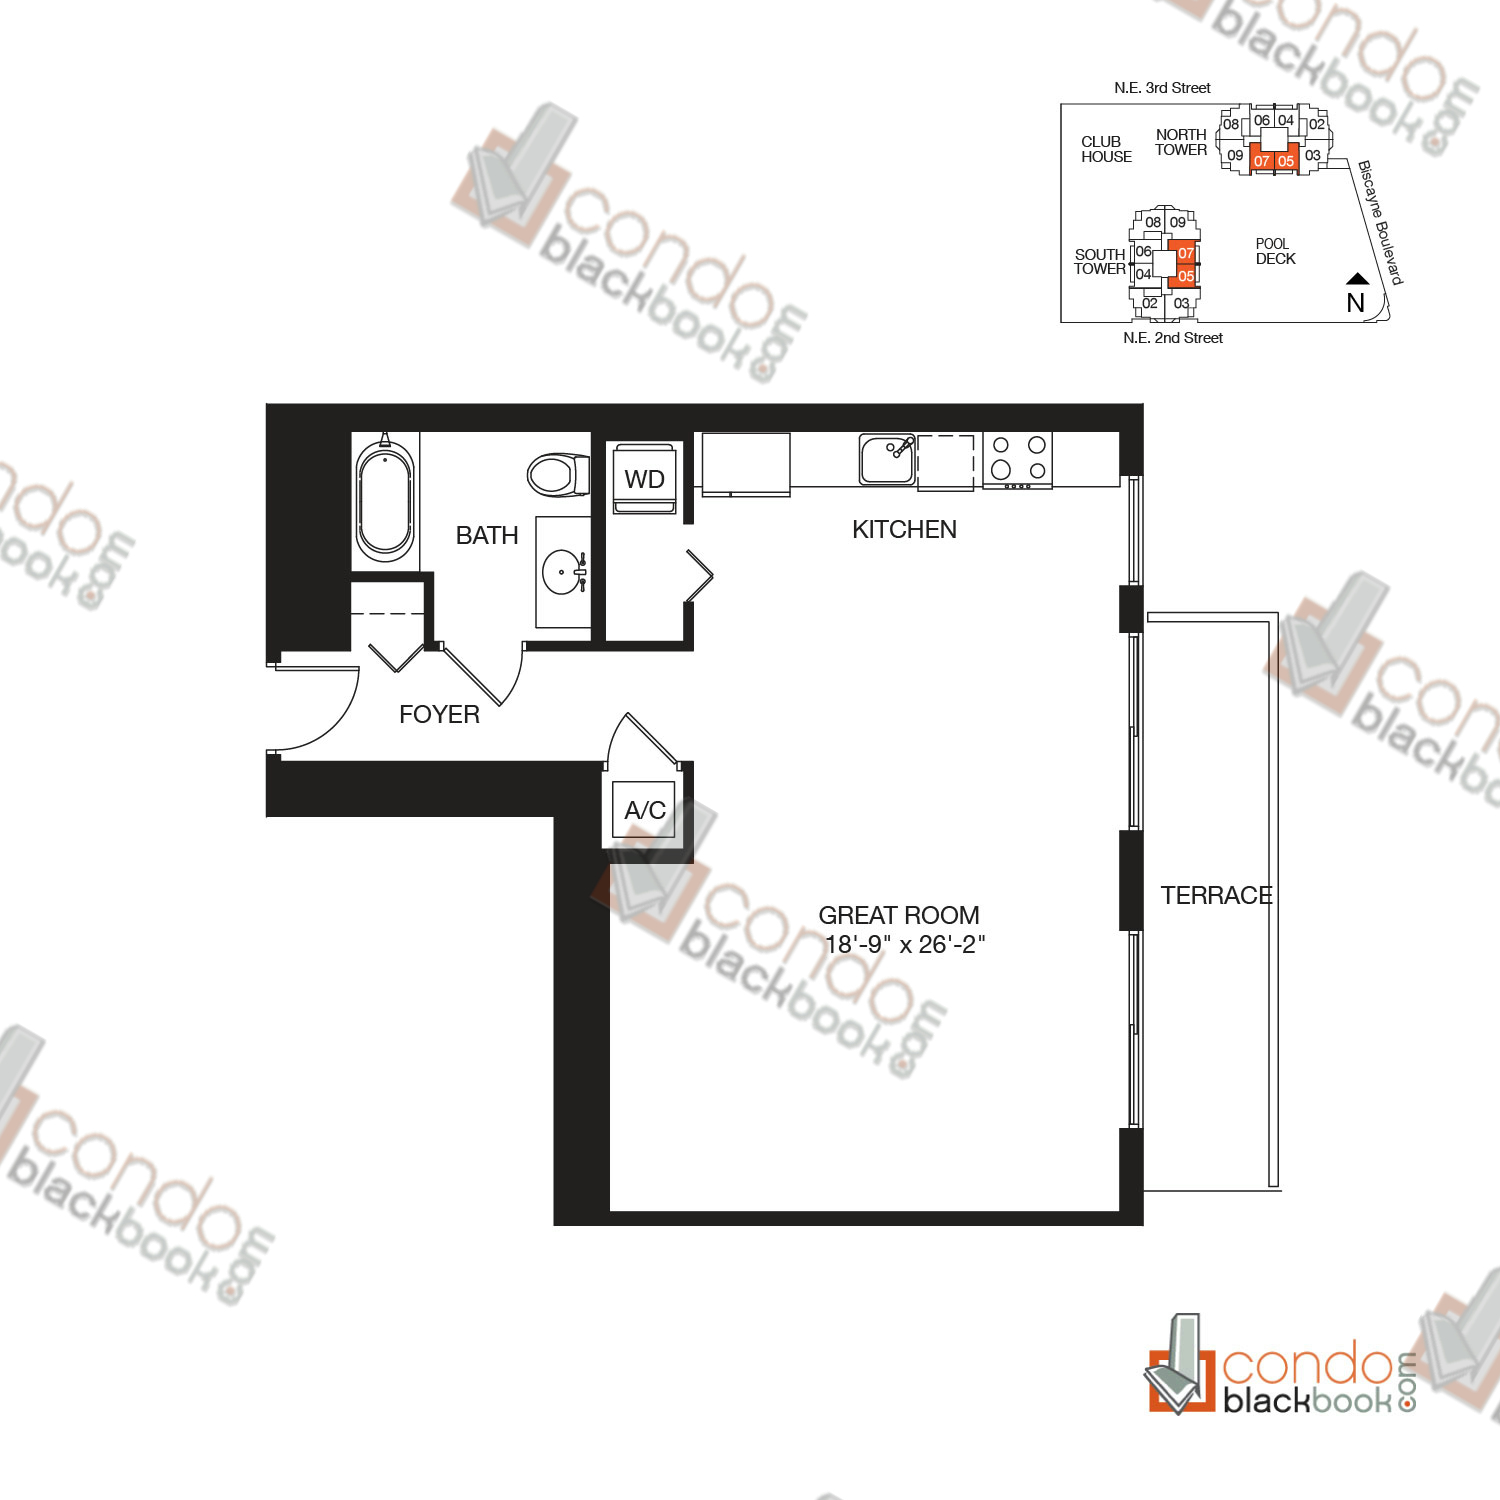 Floor plan for Vizcayne Downtown Miami Miami, model RESIDENCE 7, line 05, 07, 0/1 bedrooms, 708 sq ft